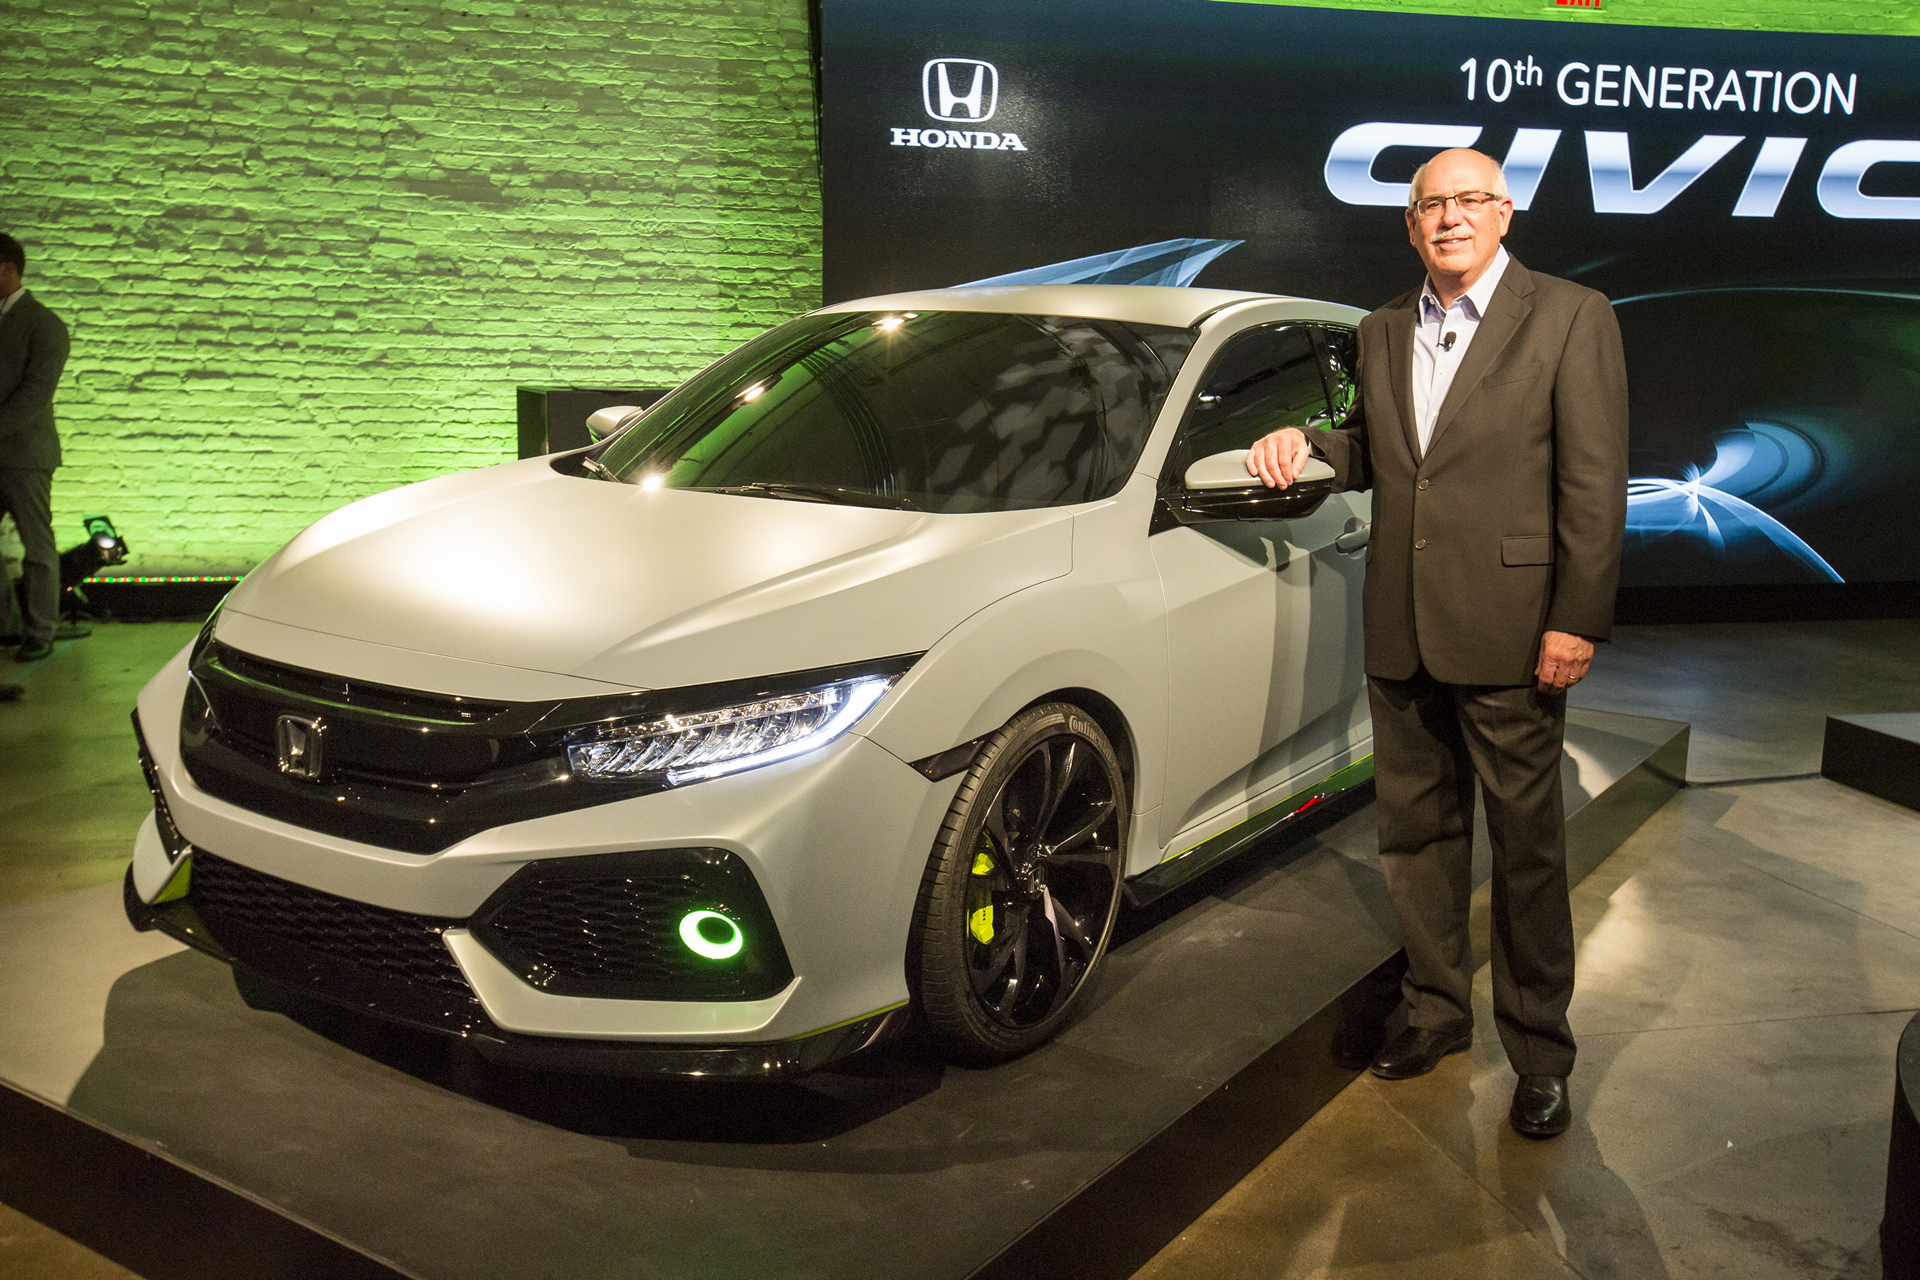 2017 Civic Hatchback Prototype © Honda Motor Co., Ltd.